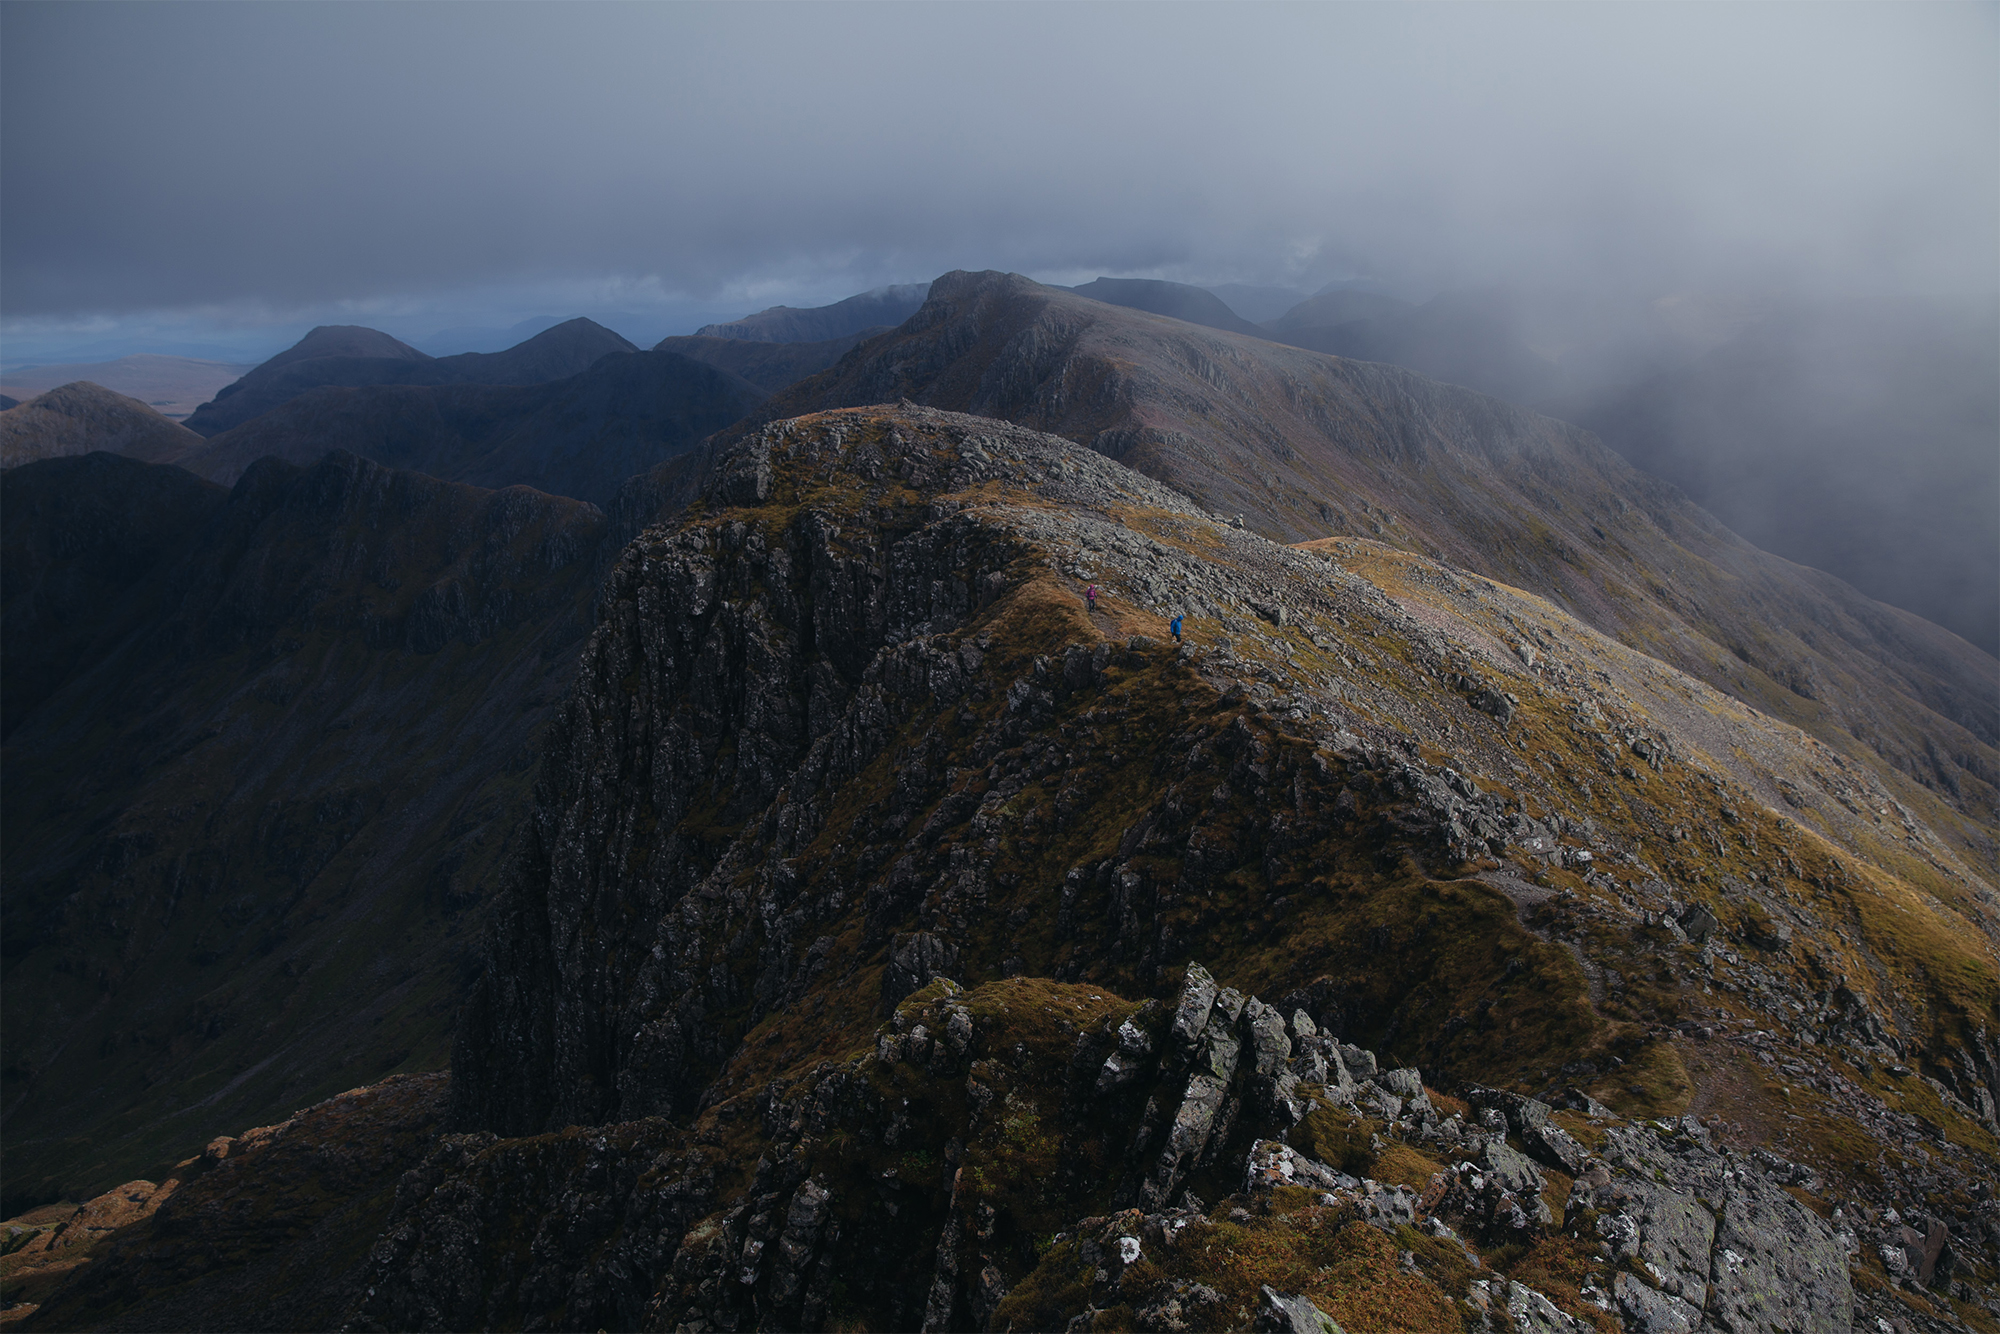 Stormy ridgeline of the Bidean nam Bian in Glencoe.